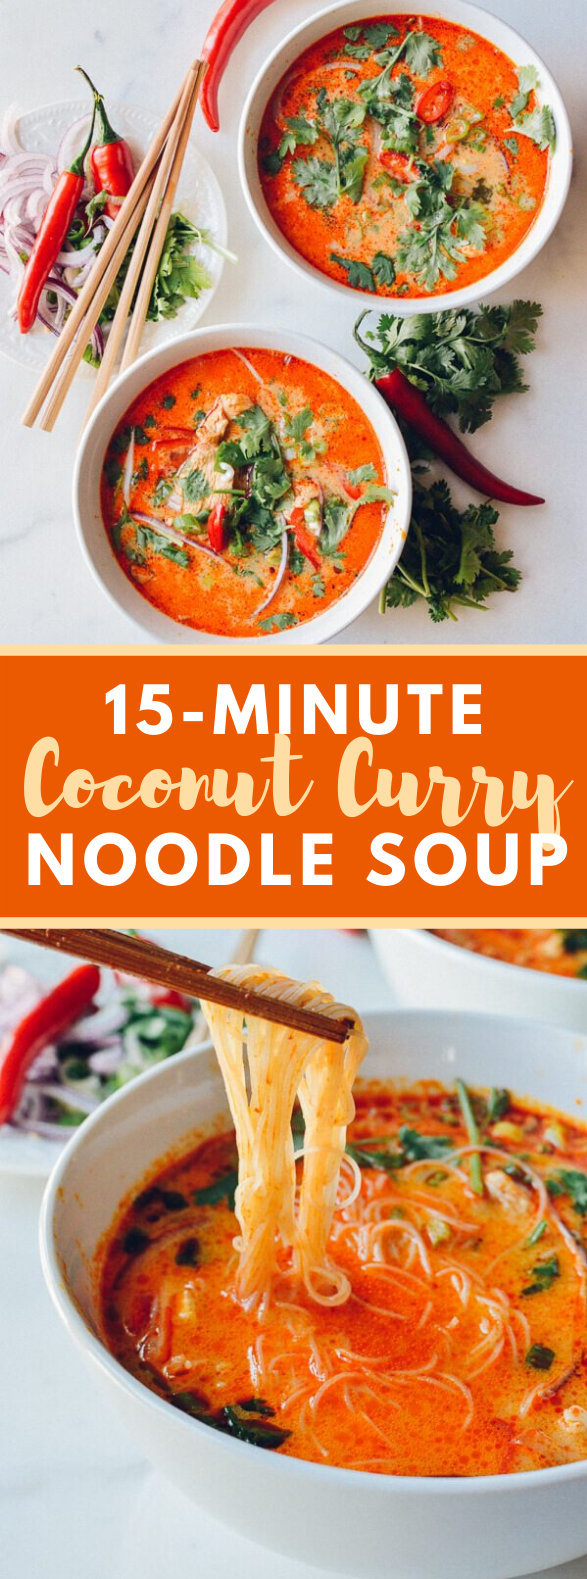 15-MINUTE COCONUT CURRY NOODLE SOUP #vegetarian #dinner